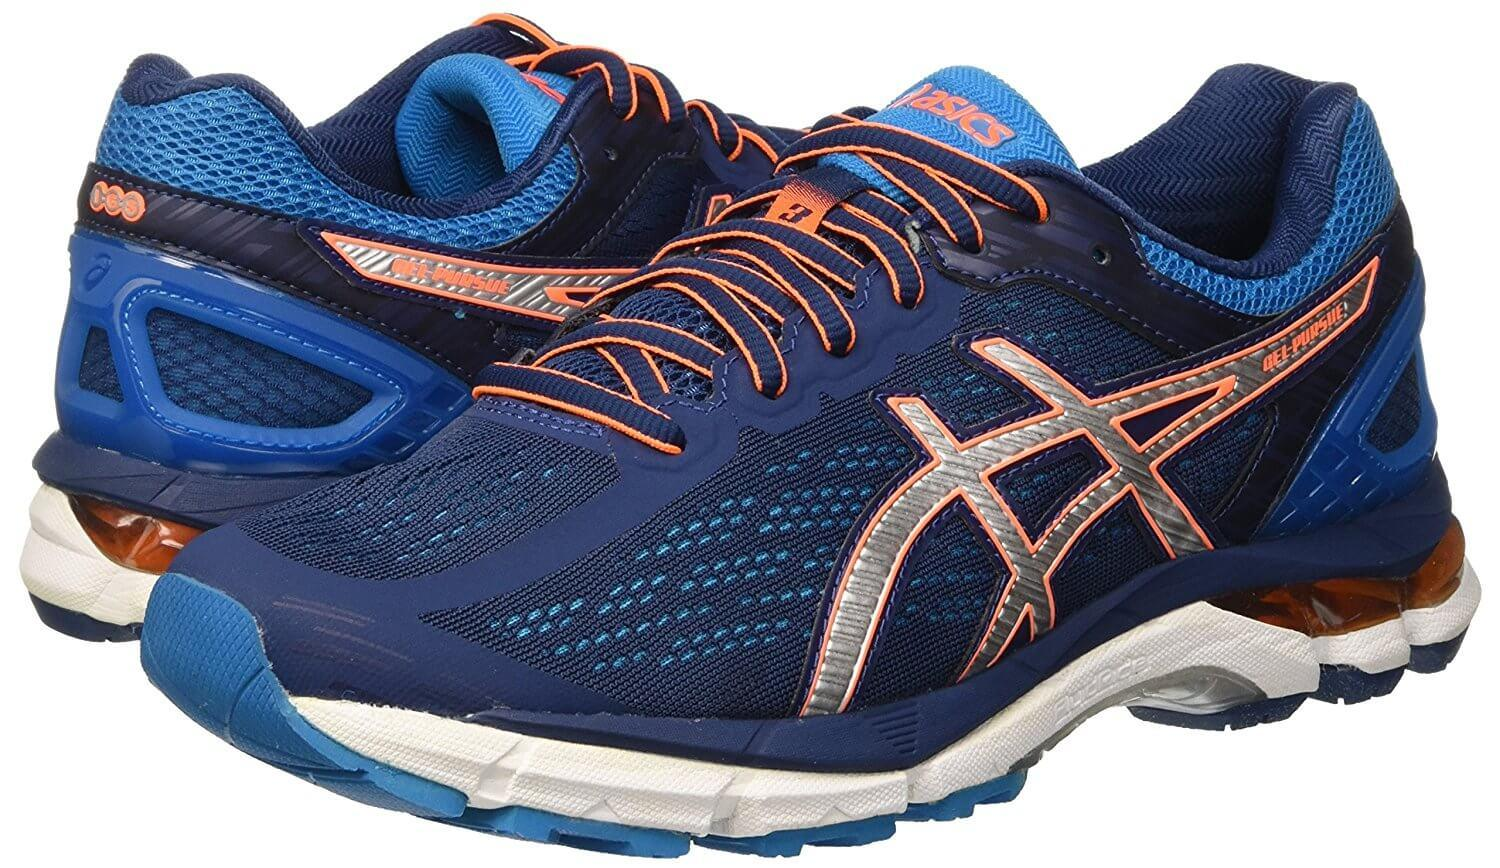 The Gel Pursue 3 by Asics is a solid road running choice.